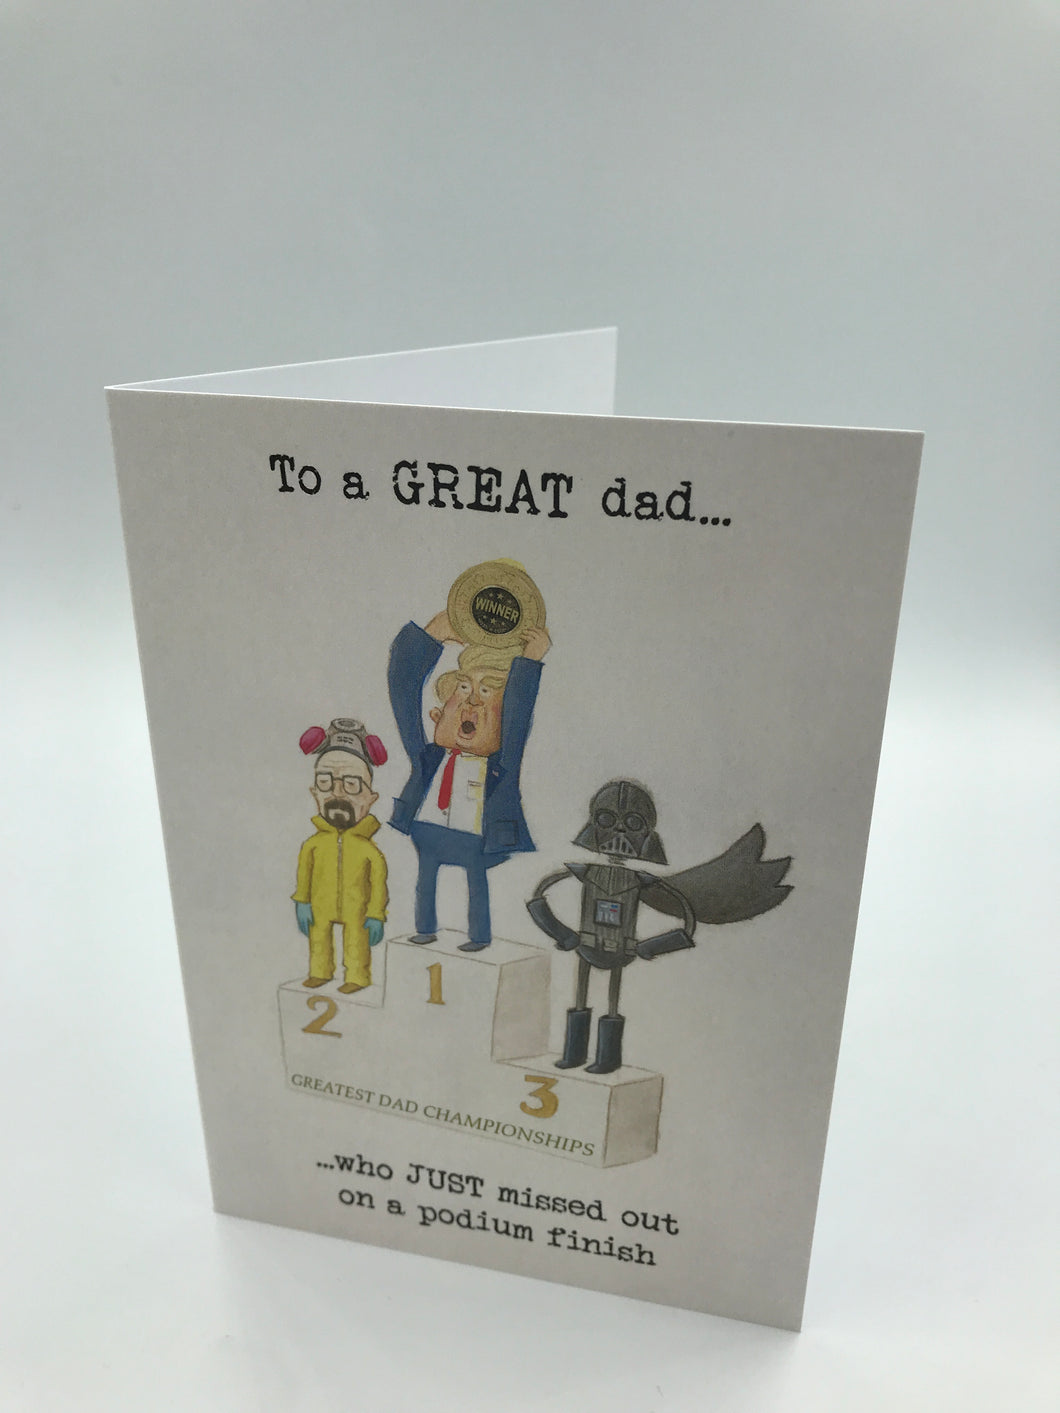 To a GREAT dad!